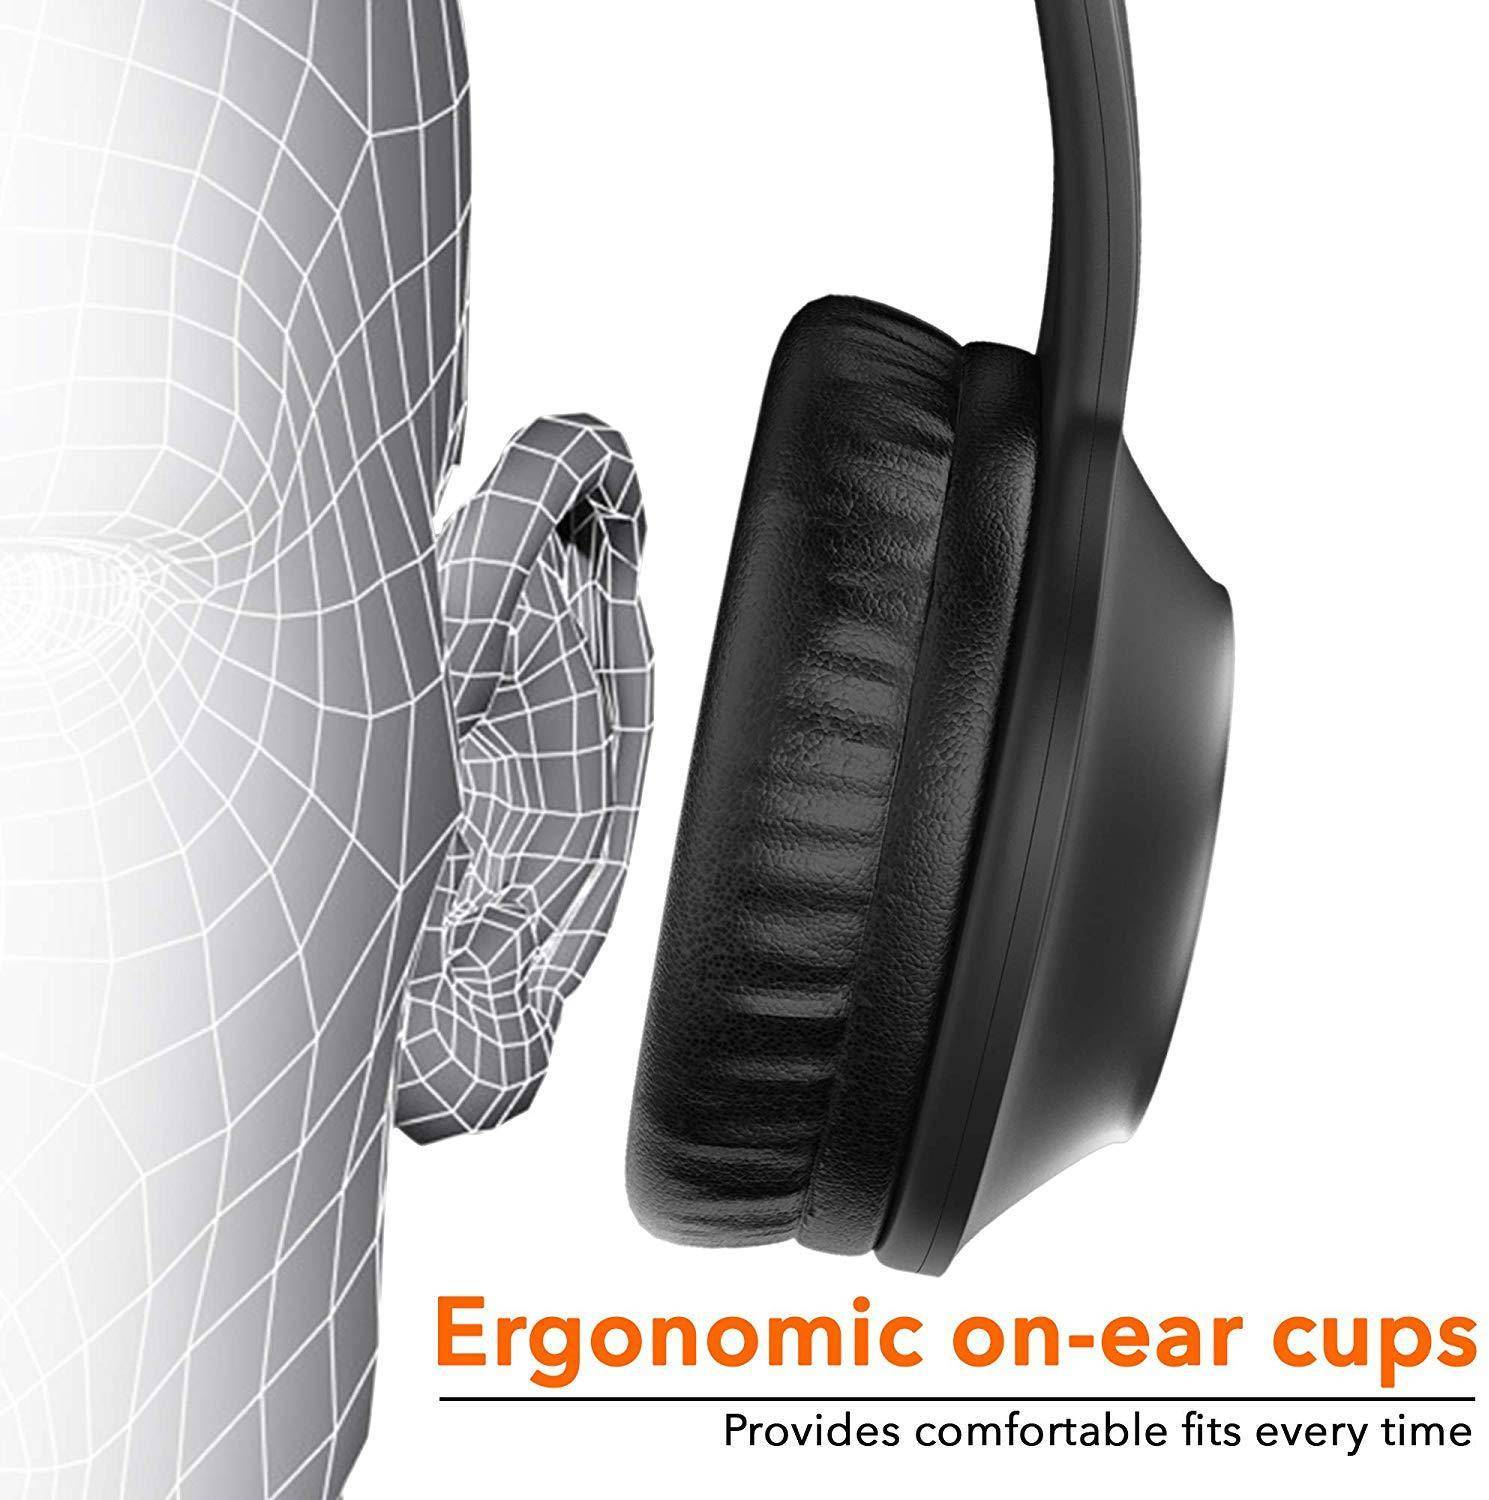 On-ear design with cushions